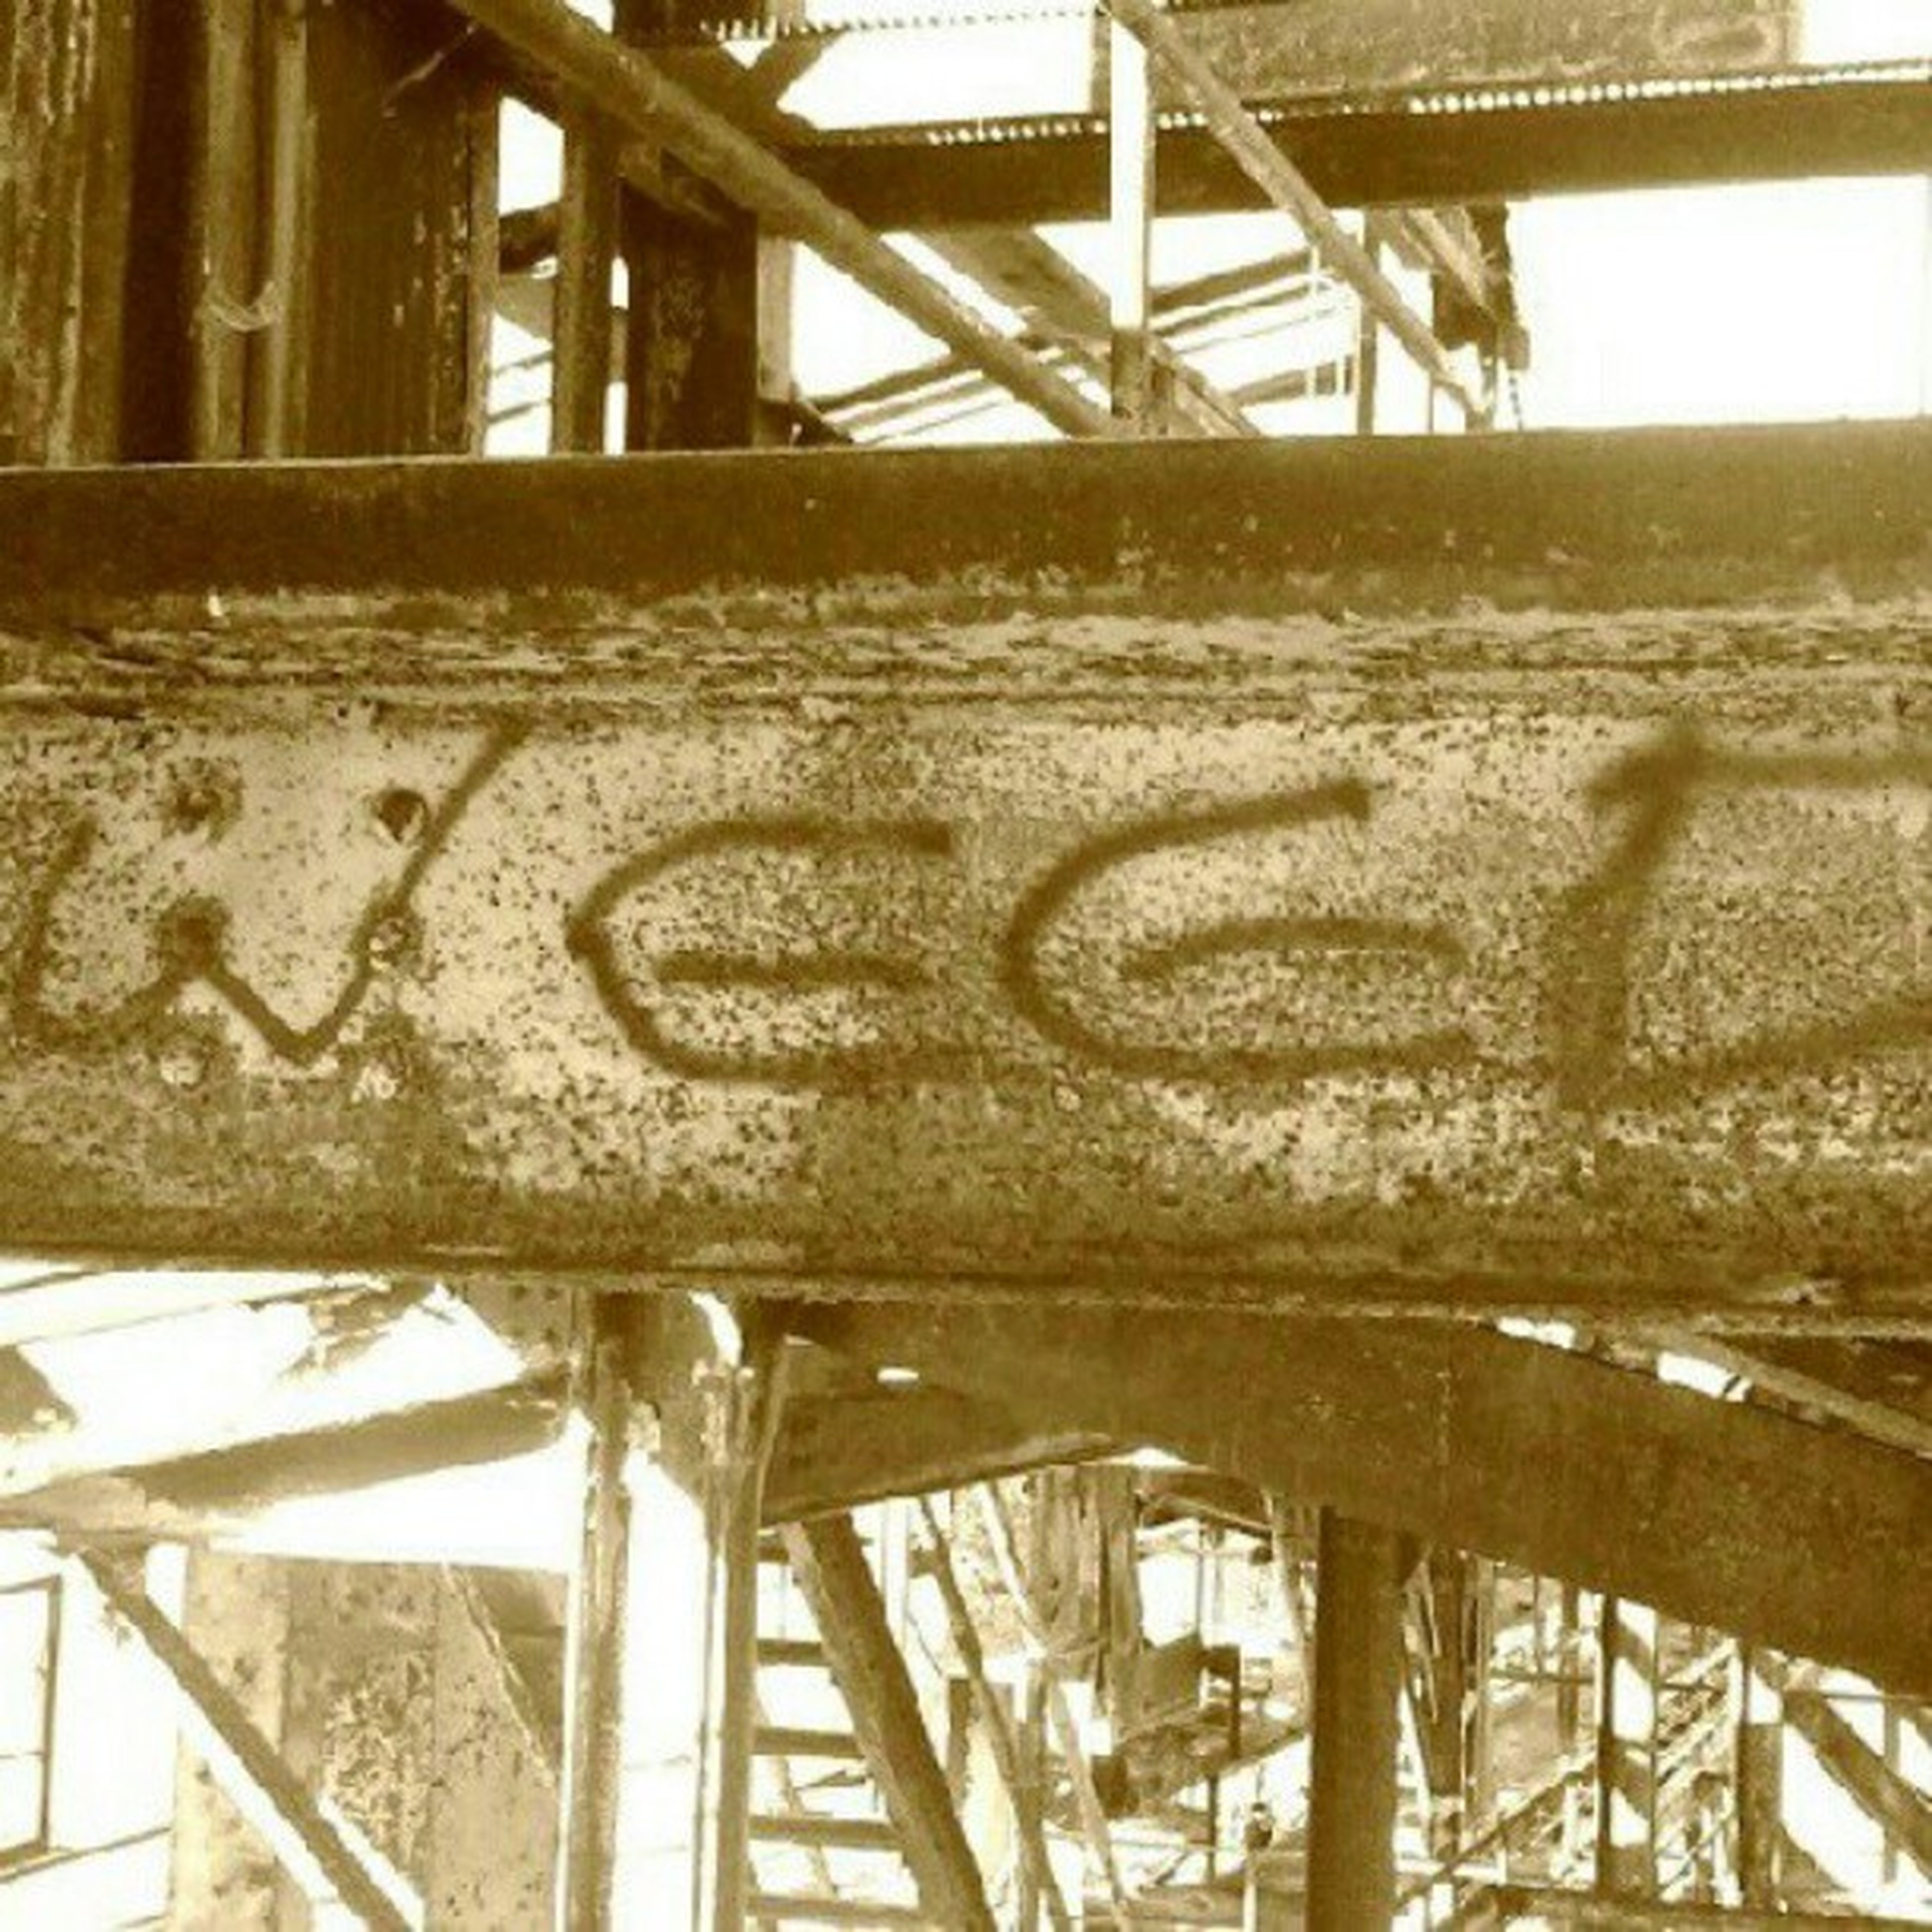 built structure, metal, architecture, metallic, railing, text, rusty, wood - material, day, western script, connection, no people, wooden, bridge - man made structure, graffiti, outdoors, pattern, close-up, sky, low angle view